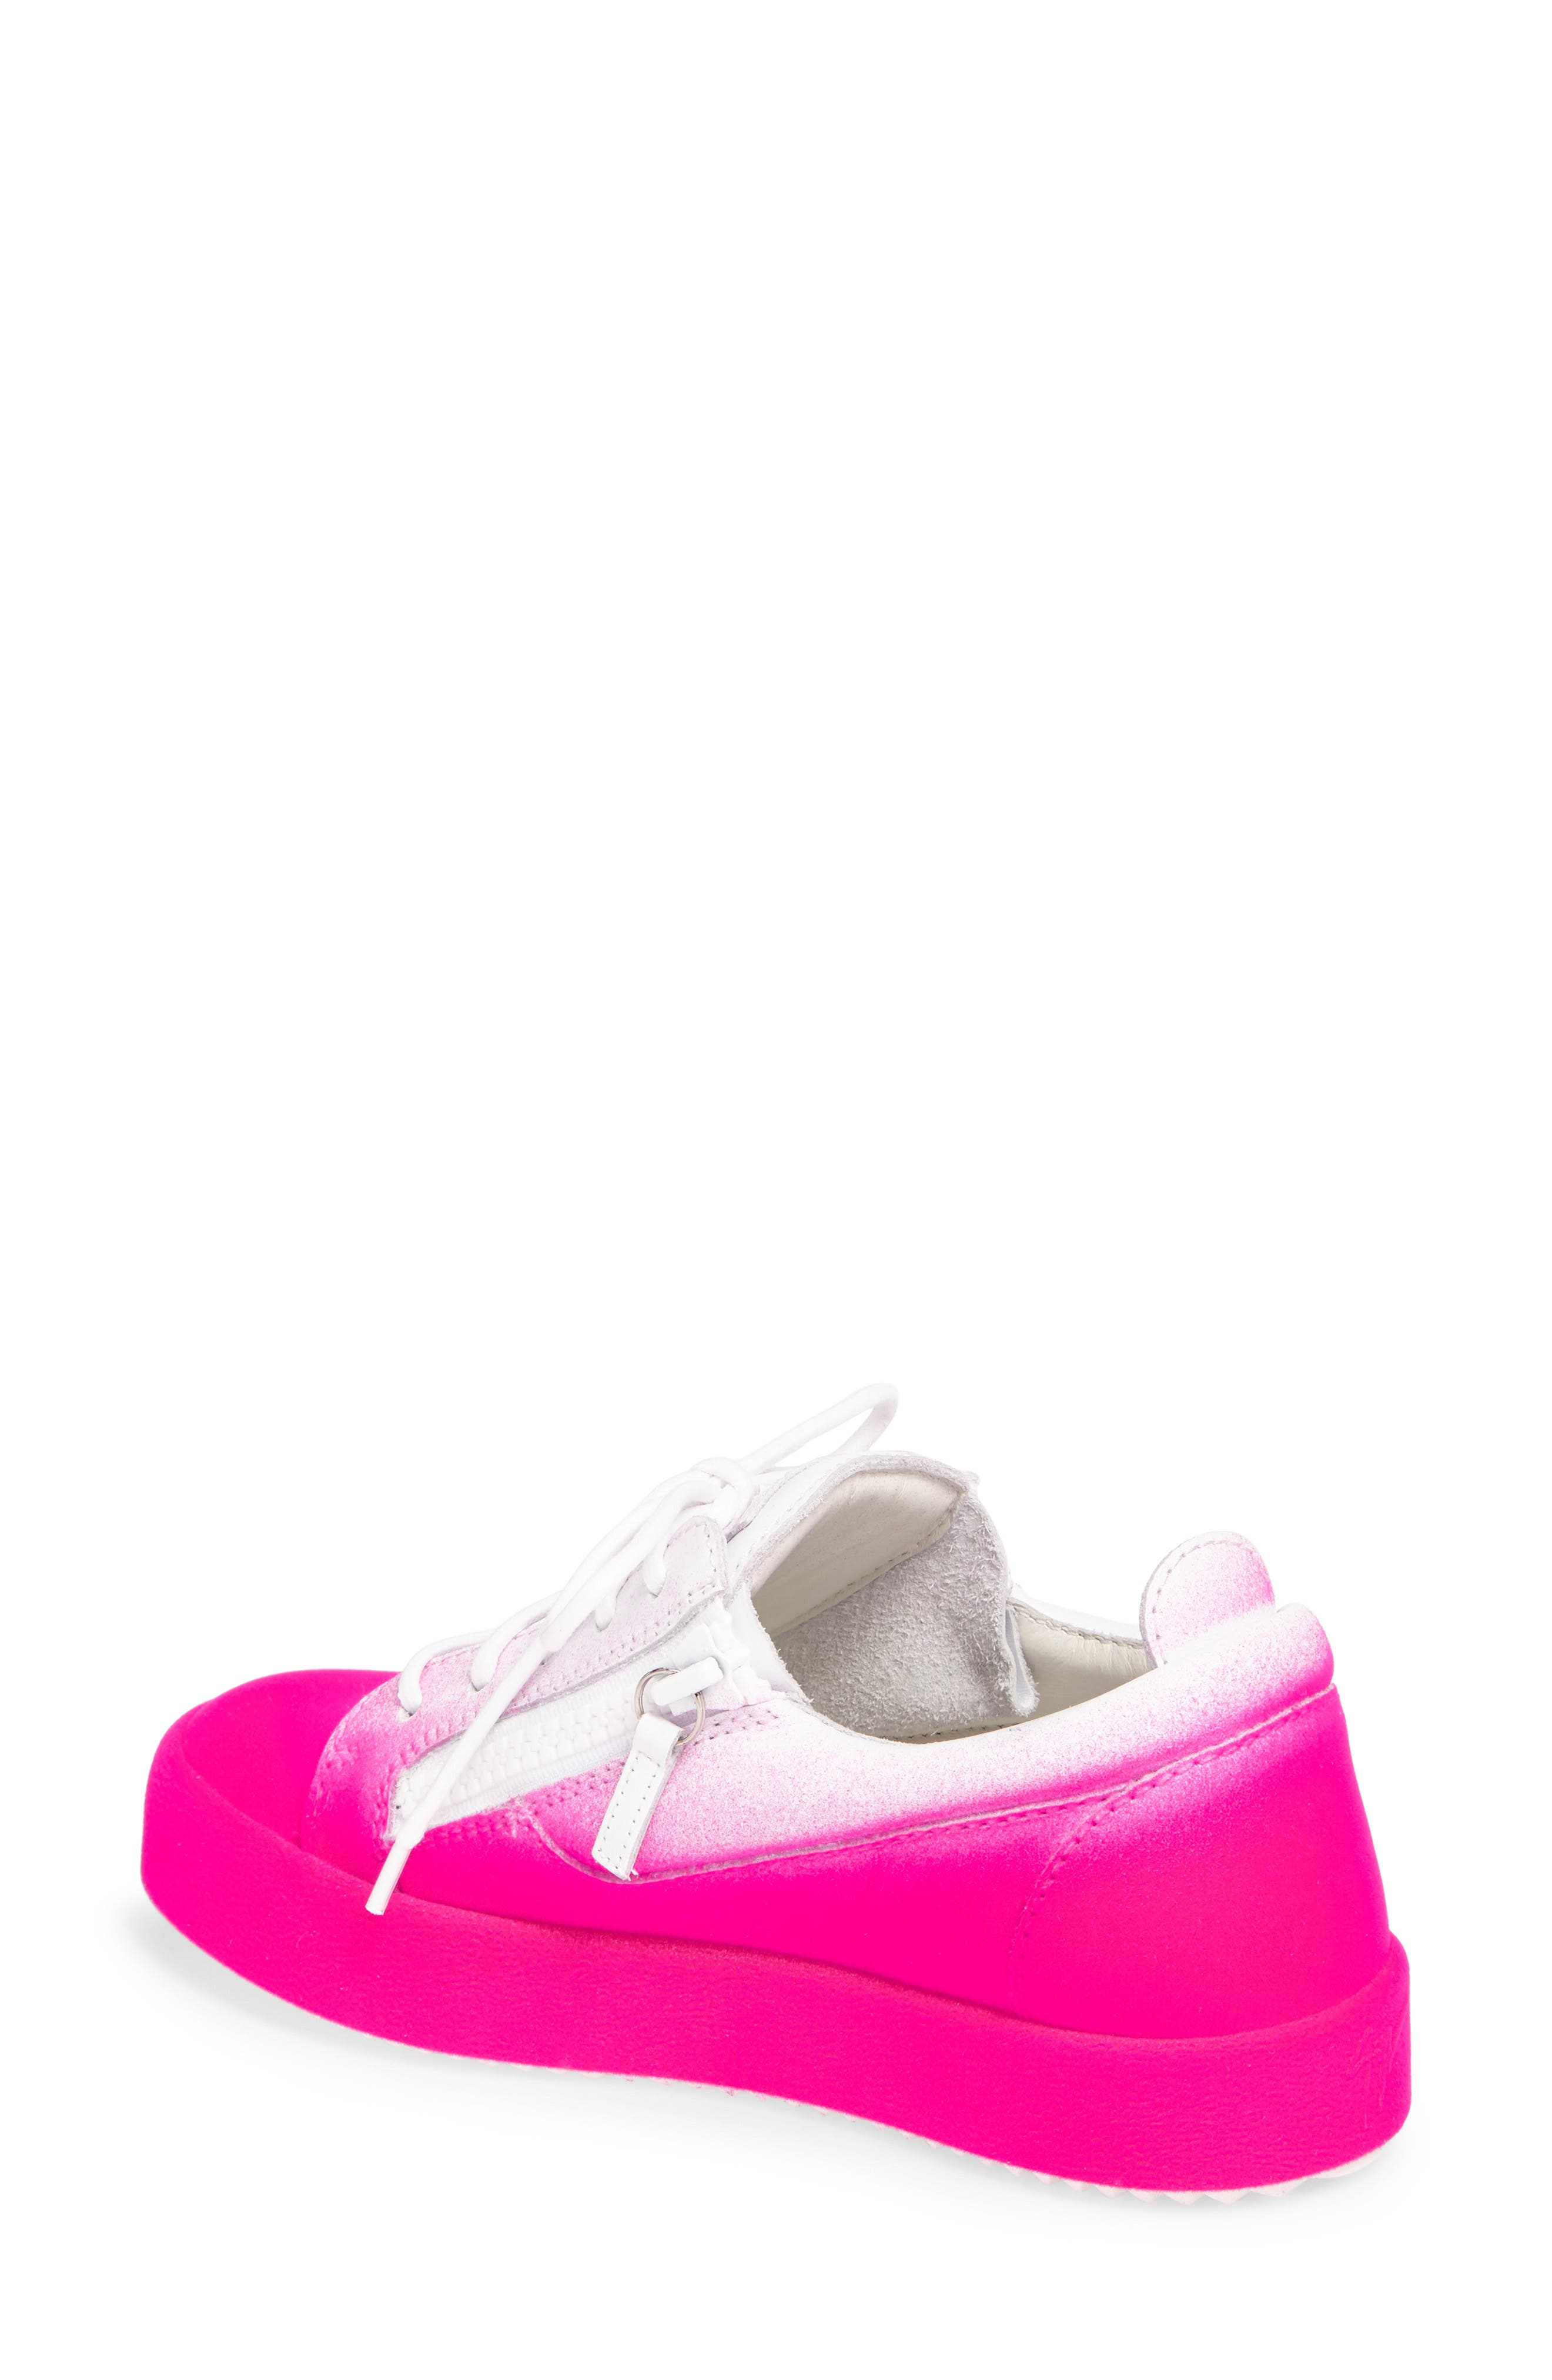 May London Low Top Sneaker,                             Alternate thumbnail 2, color,                             White/ Pink